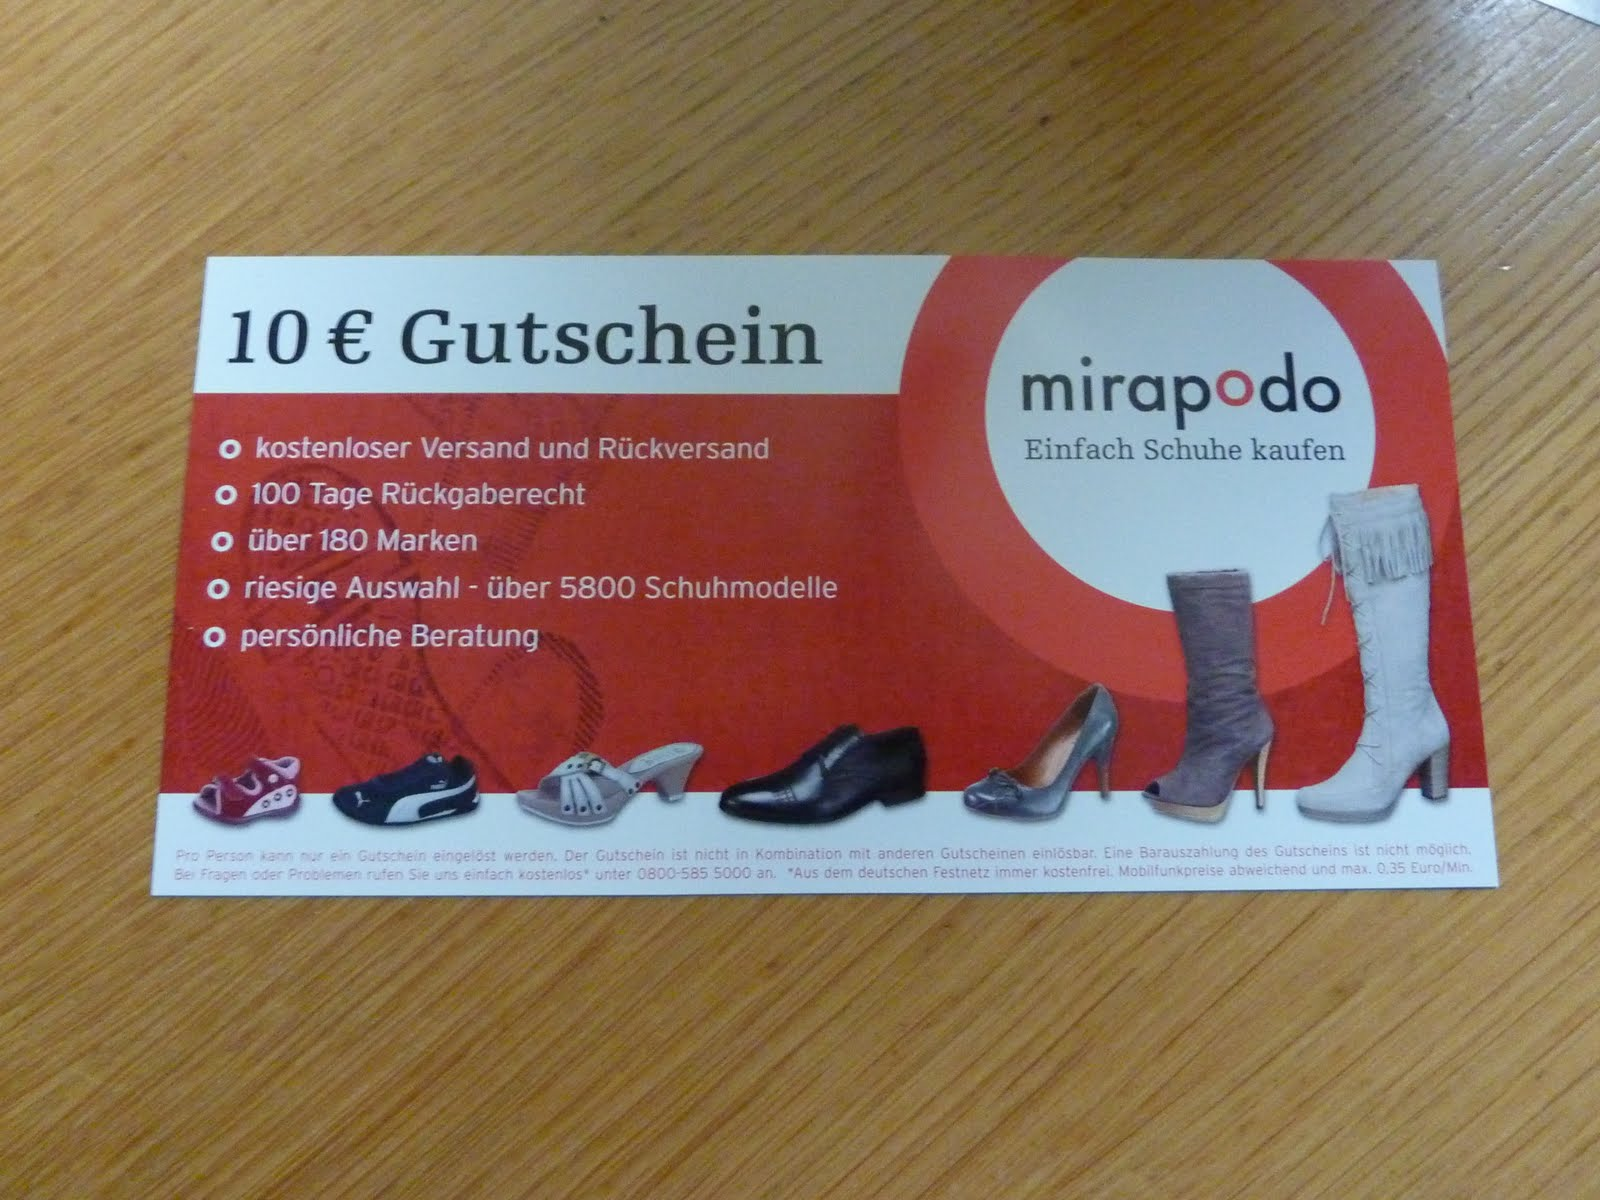 bat and win gutschein